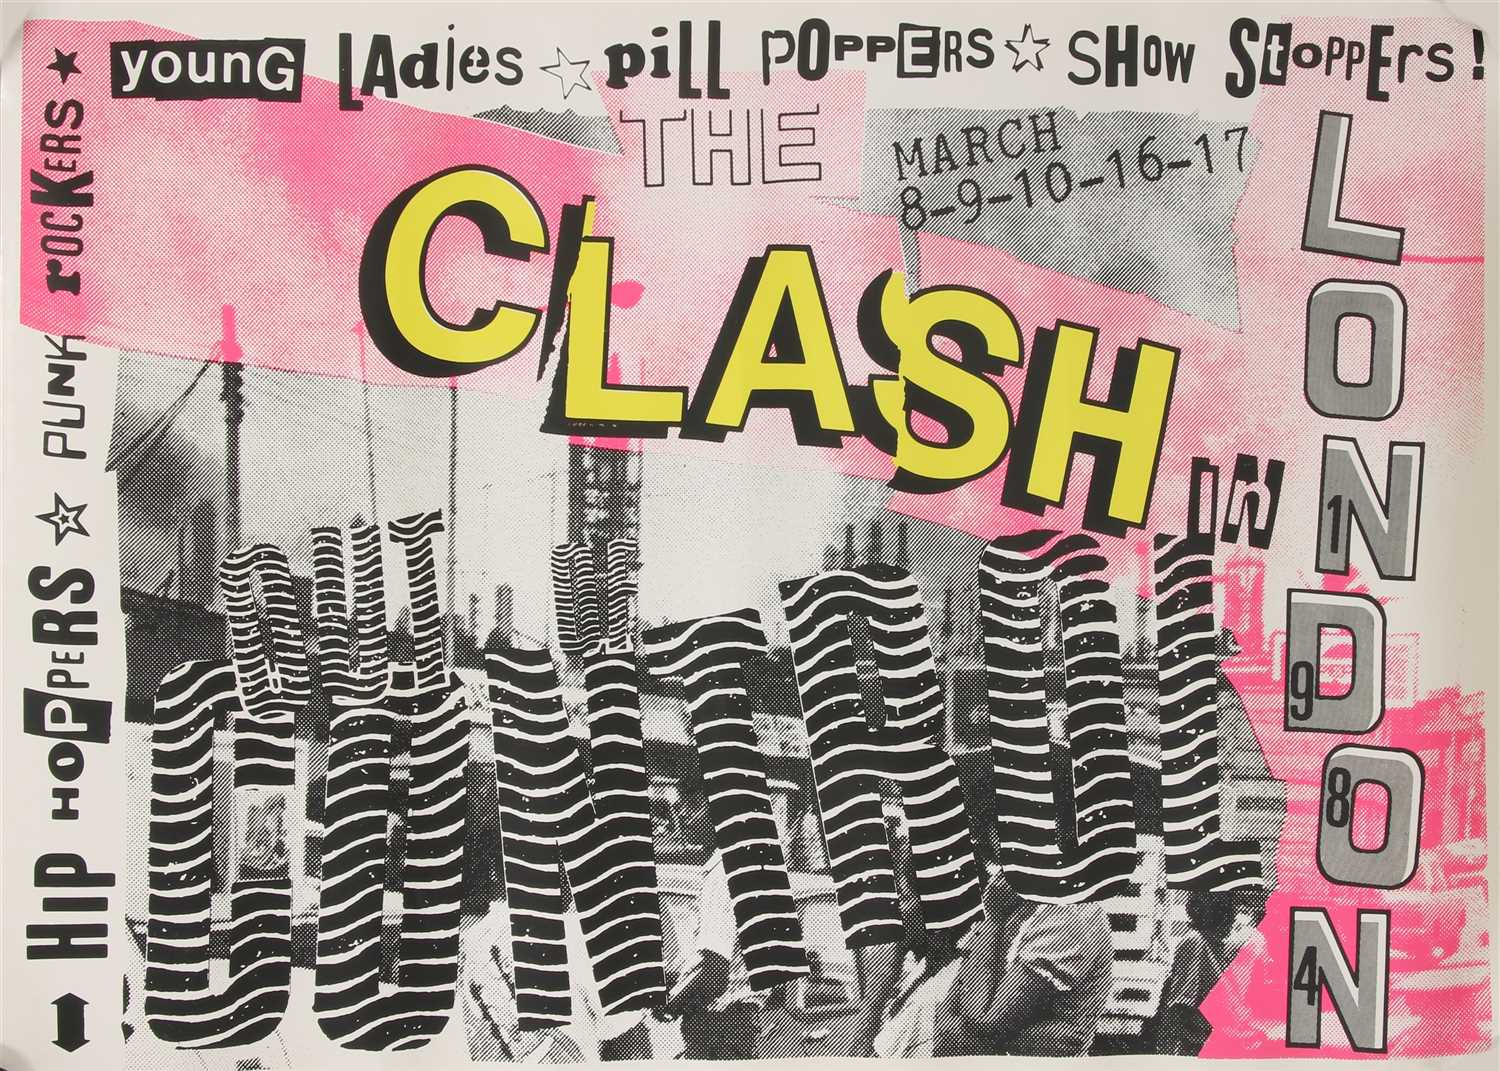 Lot 35 - 'THE CLASH: IN LONDON'